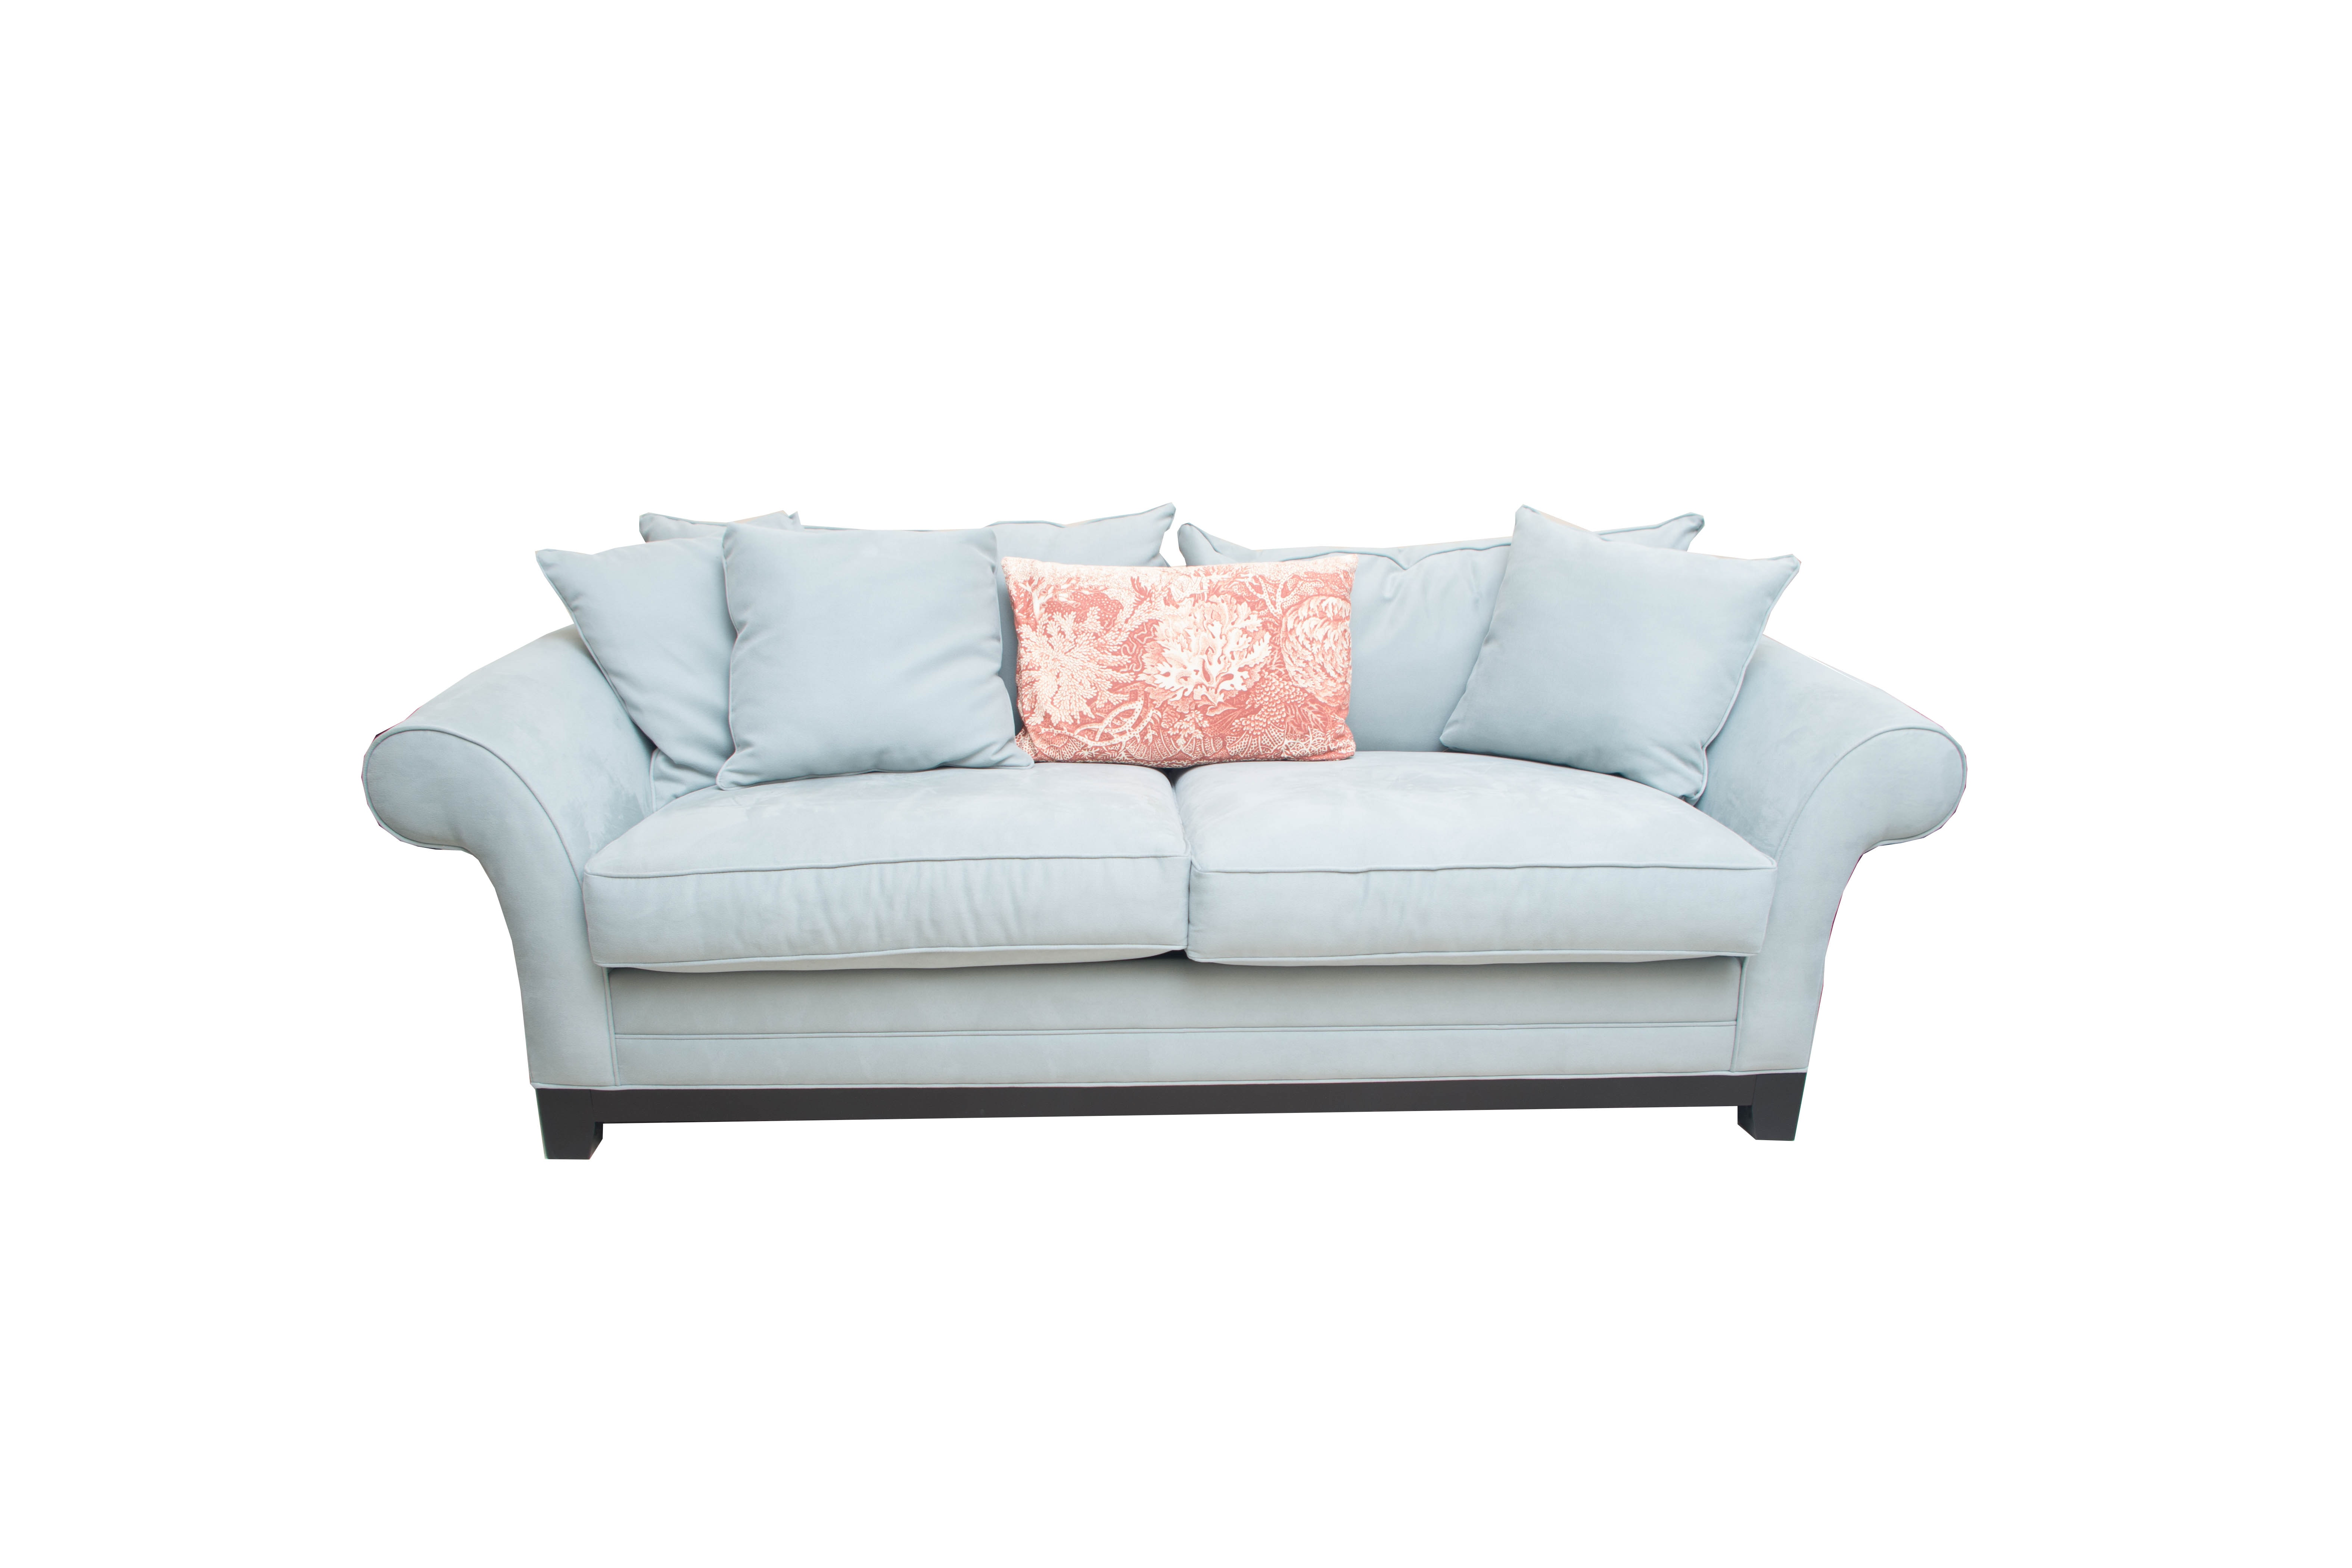 Cindy Crawford Home Pale Blue Upholstered Sofa ...